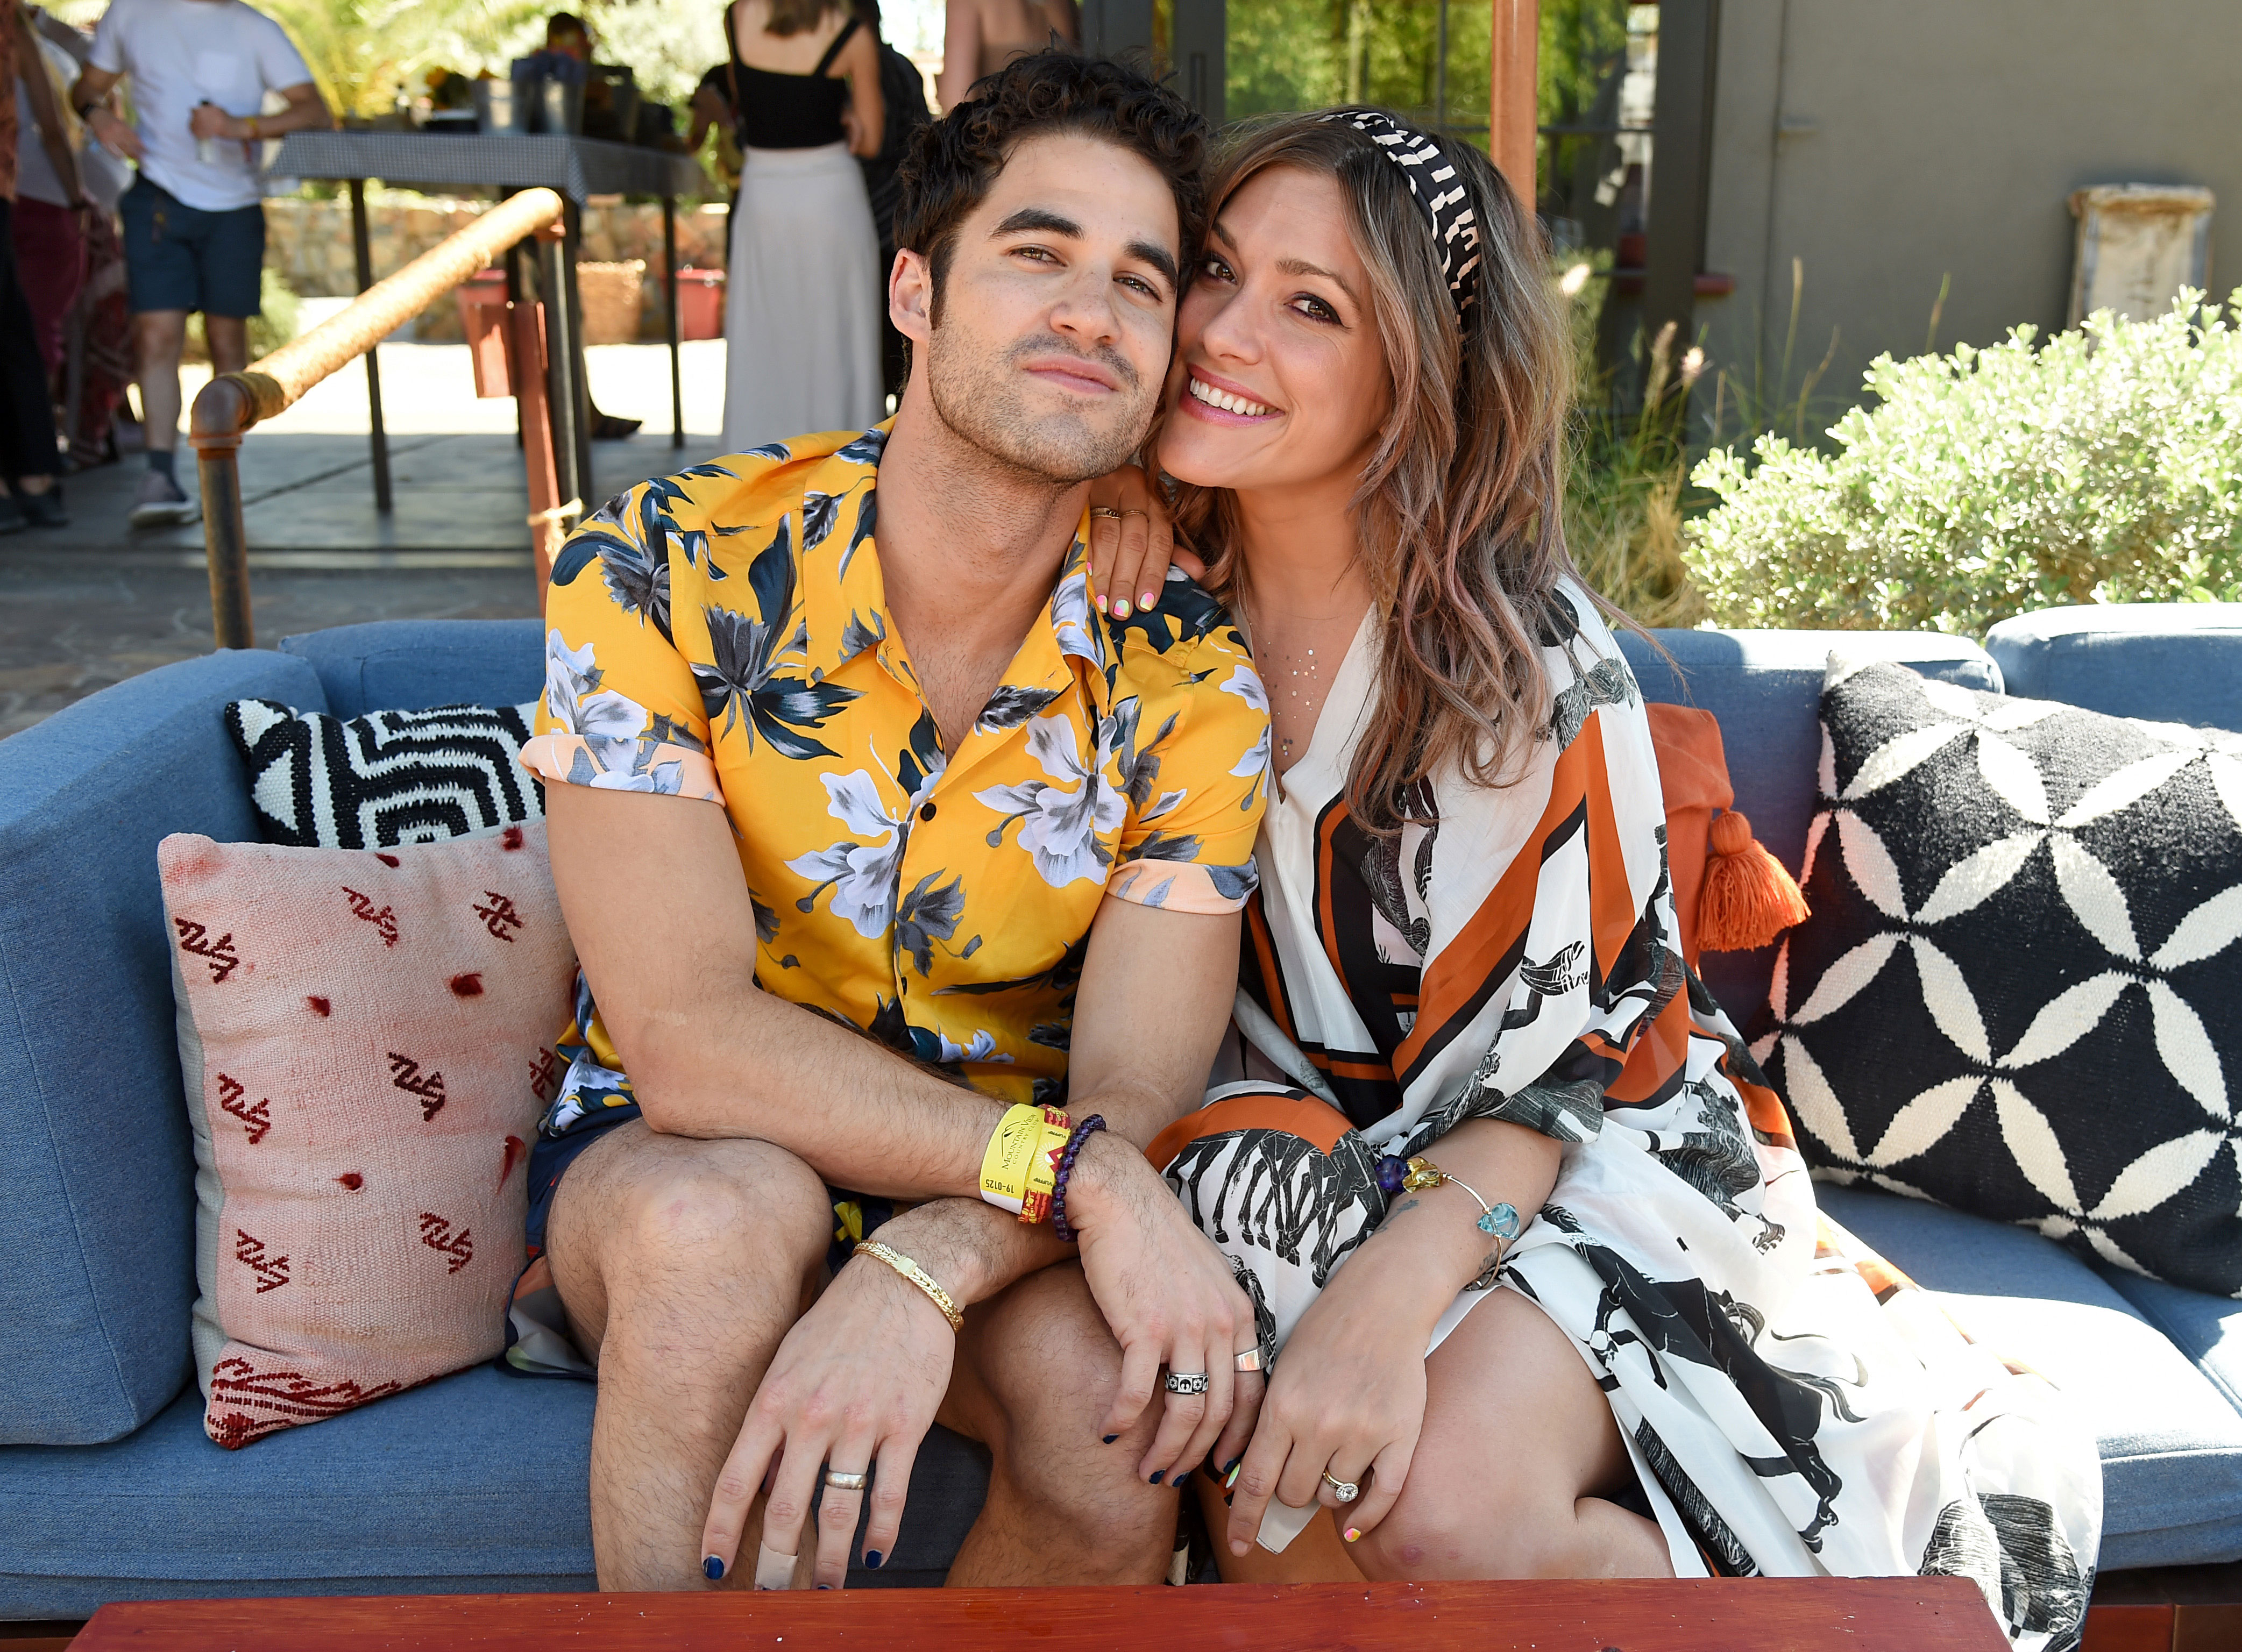 Darren Criss Mia Swier Coachella 2019 - The couple, who tied the knot in February, chilled at Poolside with H&M at Sparrow's Lodge in Palm Springs, California on Saturday, April 13.